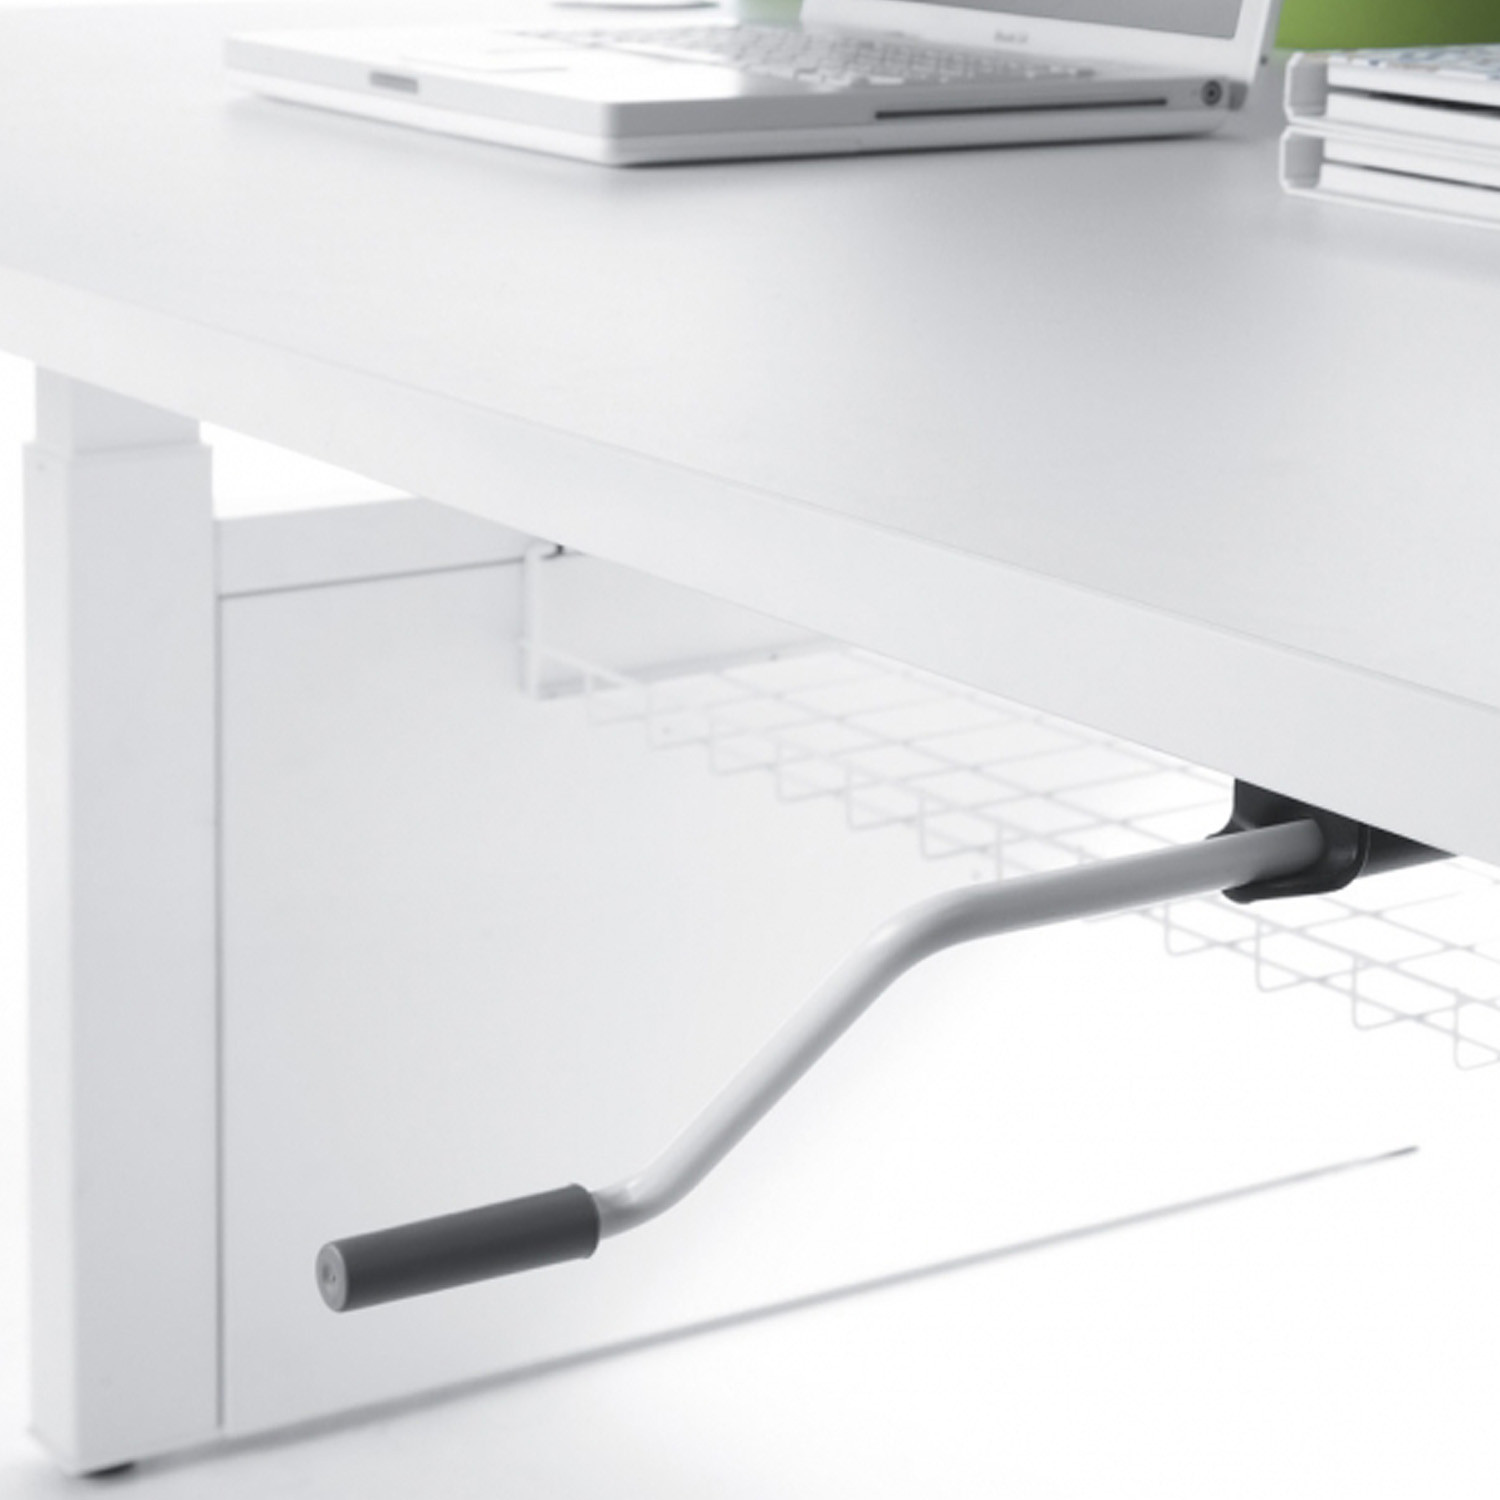 Balance Crank Handle Adjustable Desk